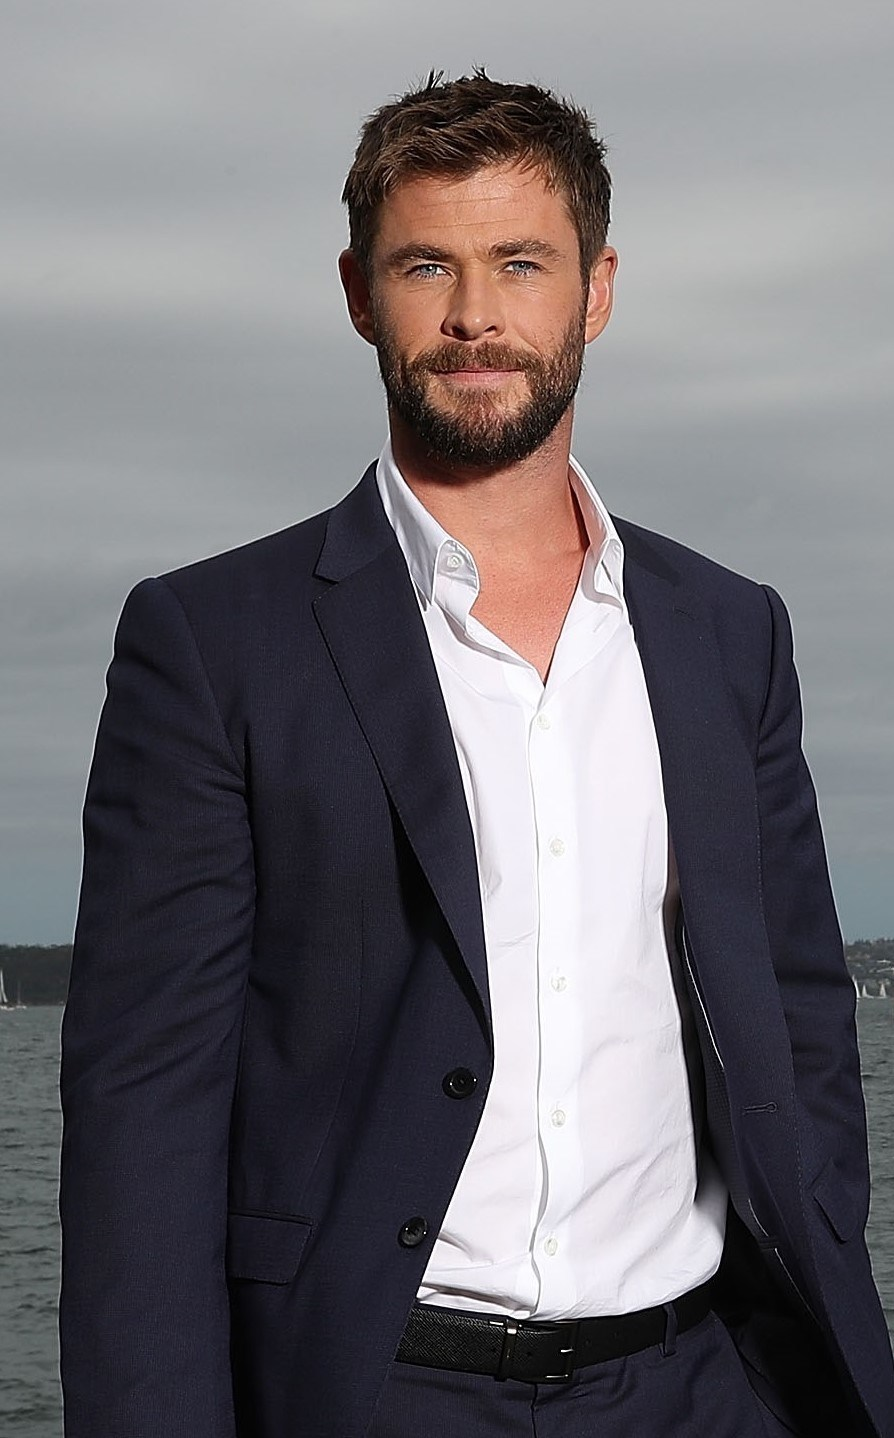 Chris Hemsworth (PRNewsfoto/Pernod Ricard)